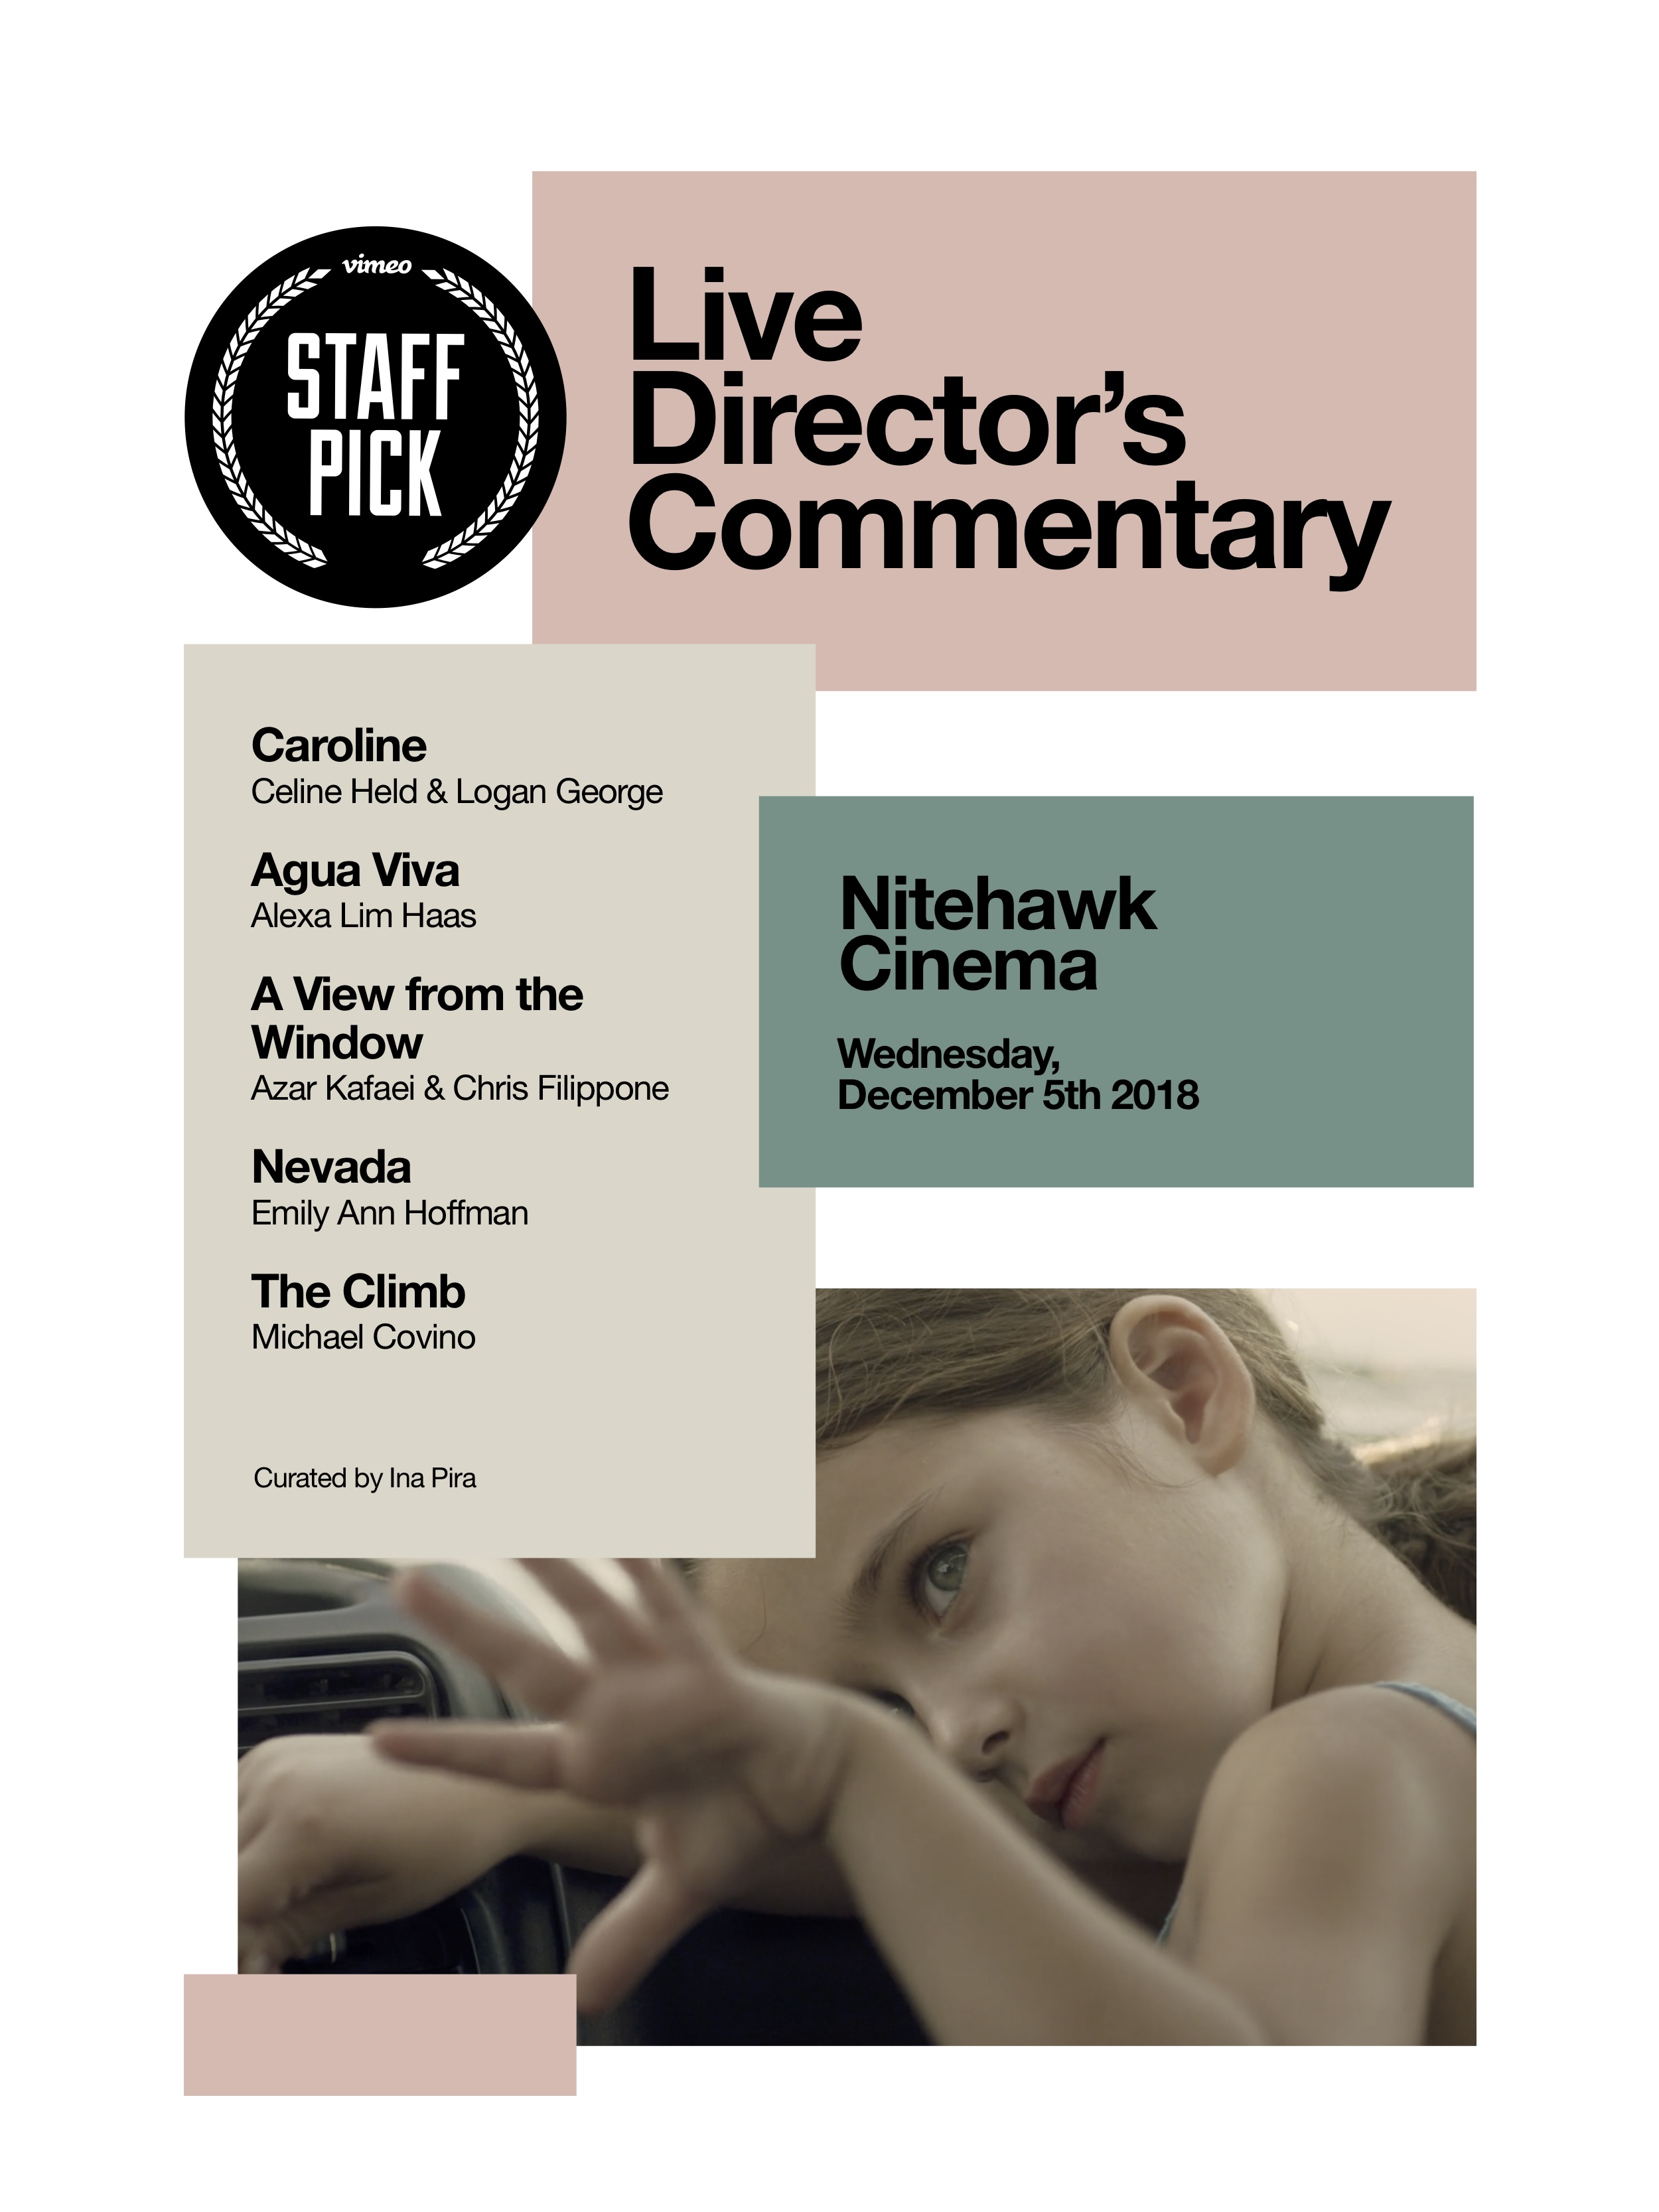 Poster for Vimeo Staff Picks with Live Director's Commentary